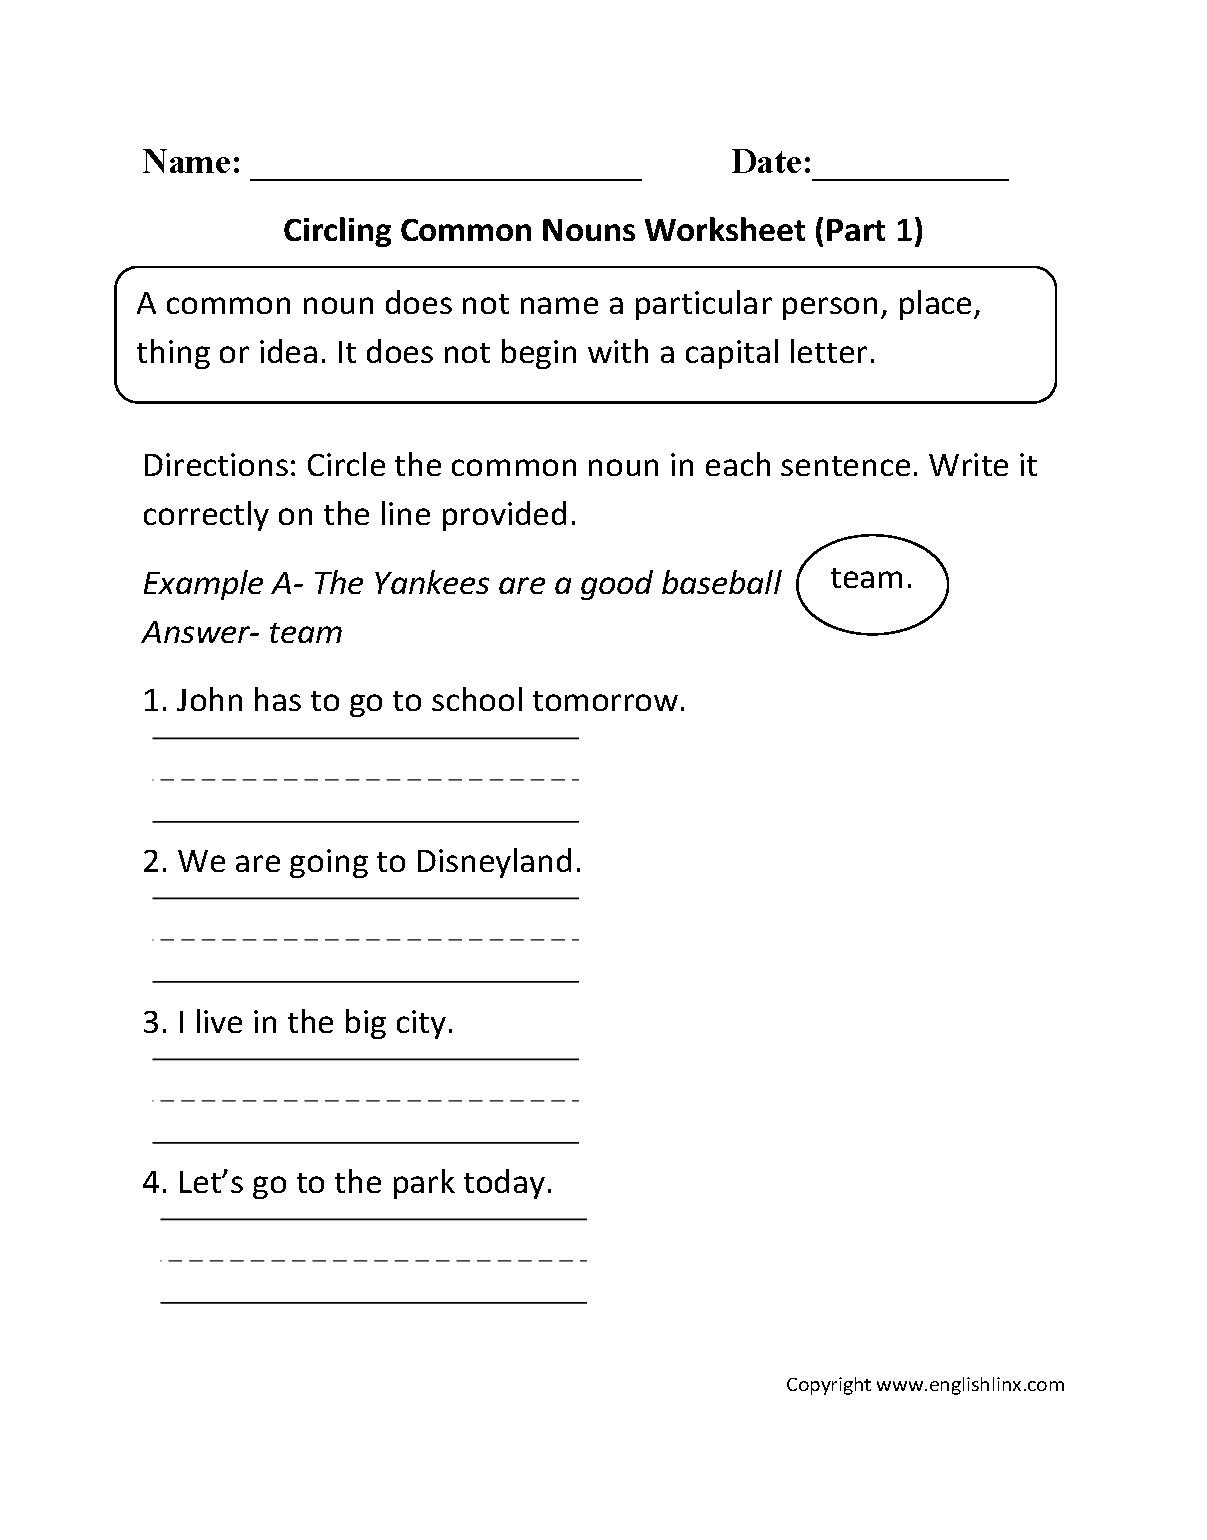 nouns worksheets proper and mon nouns worksheets within following directions worksheet middle school